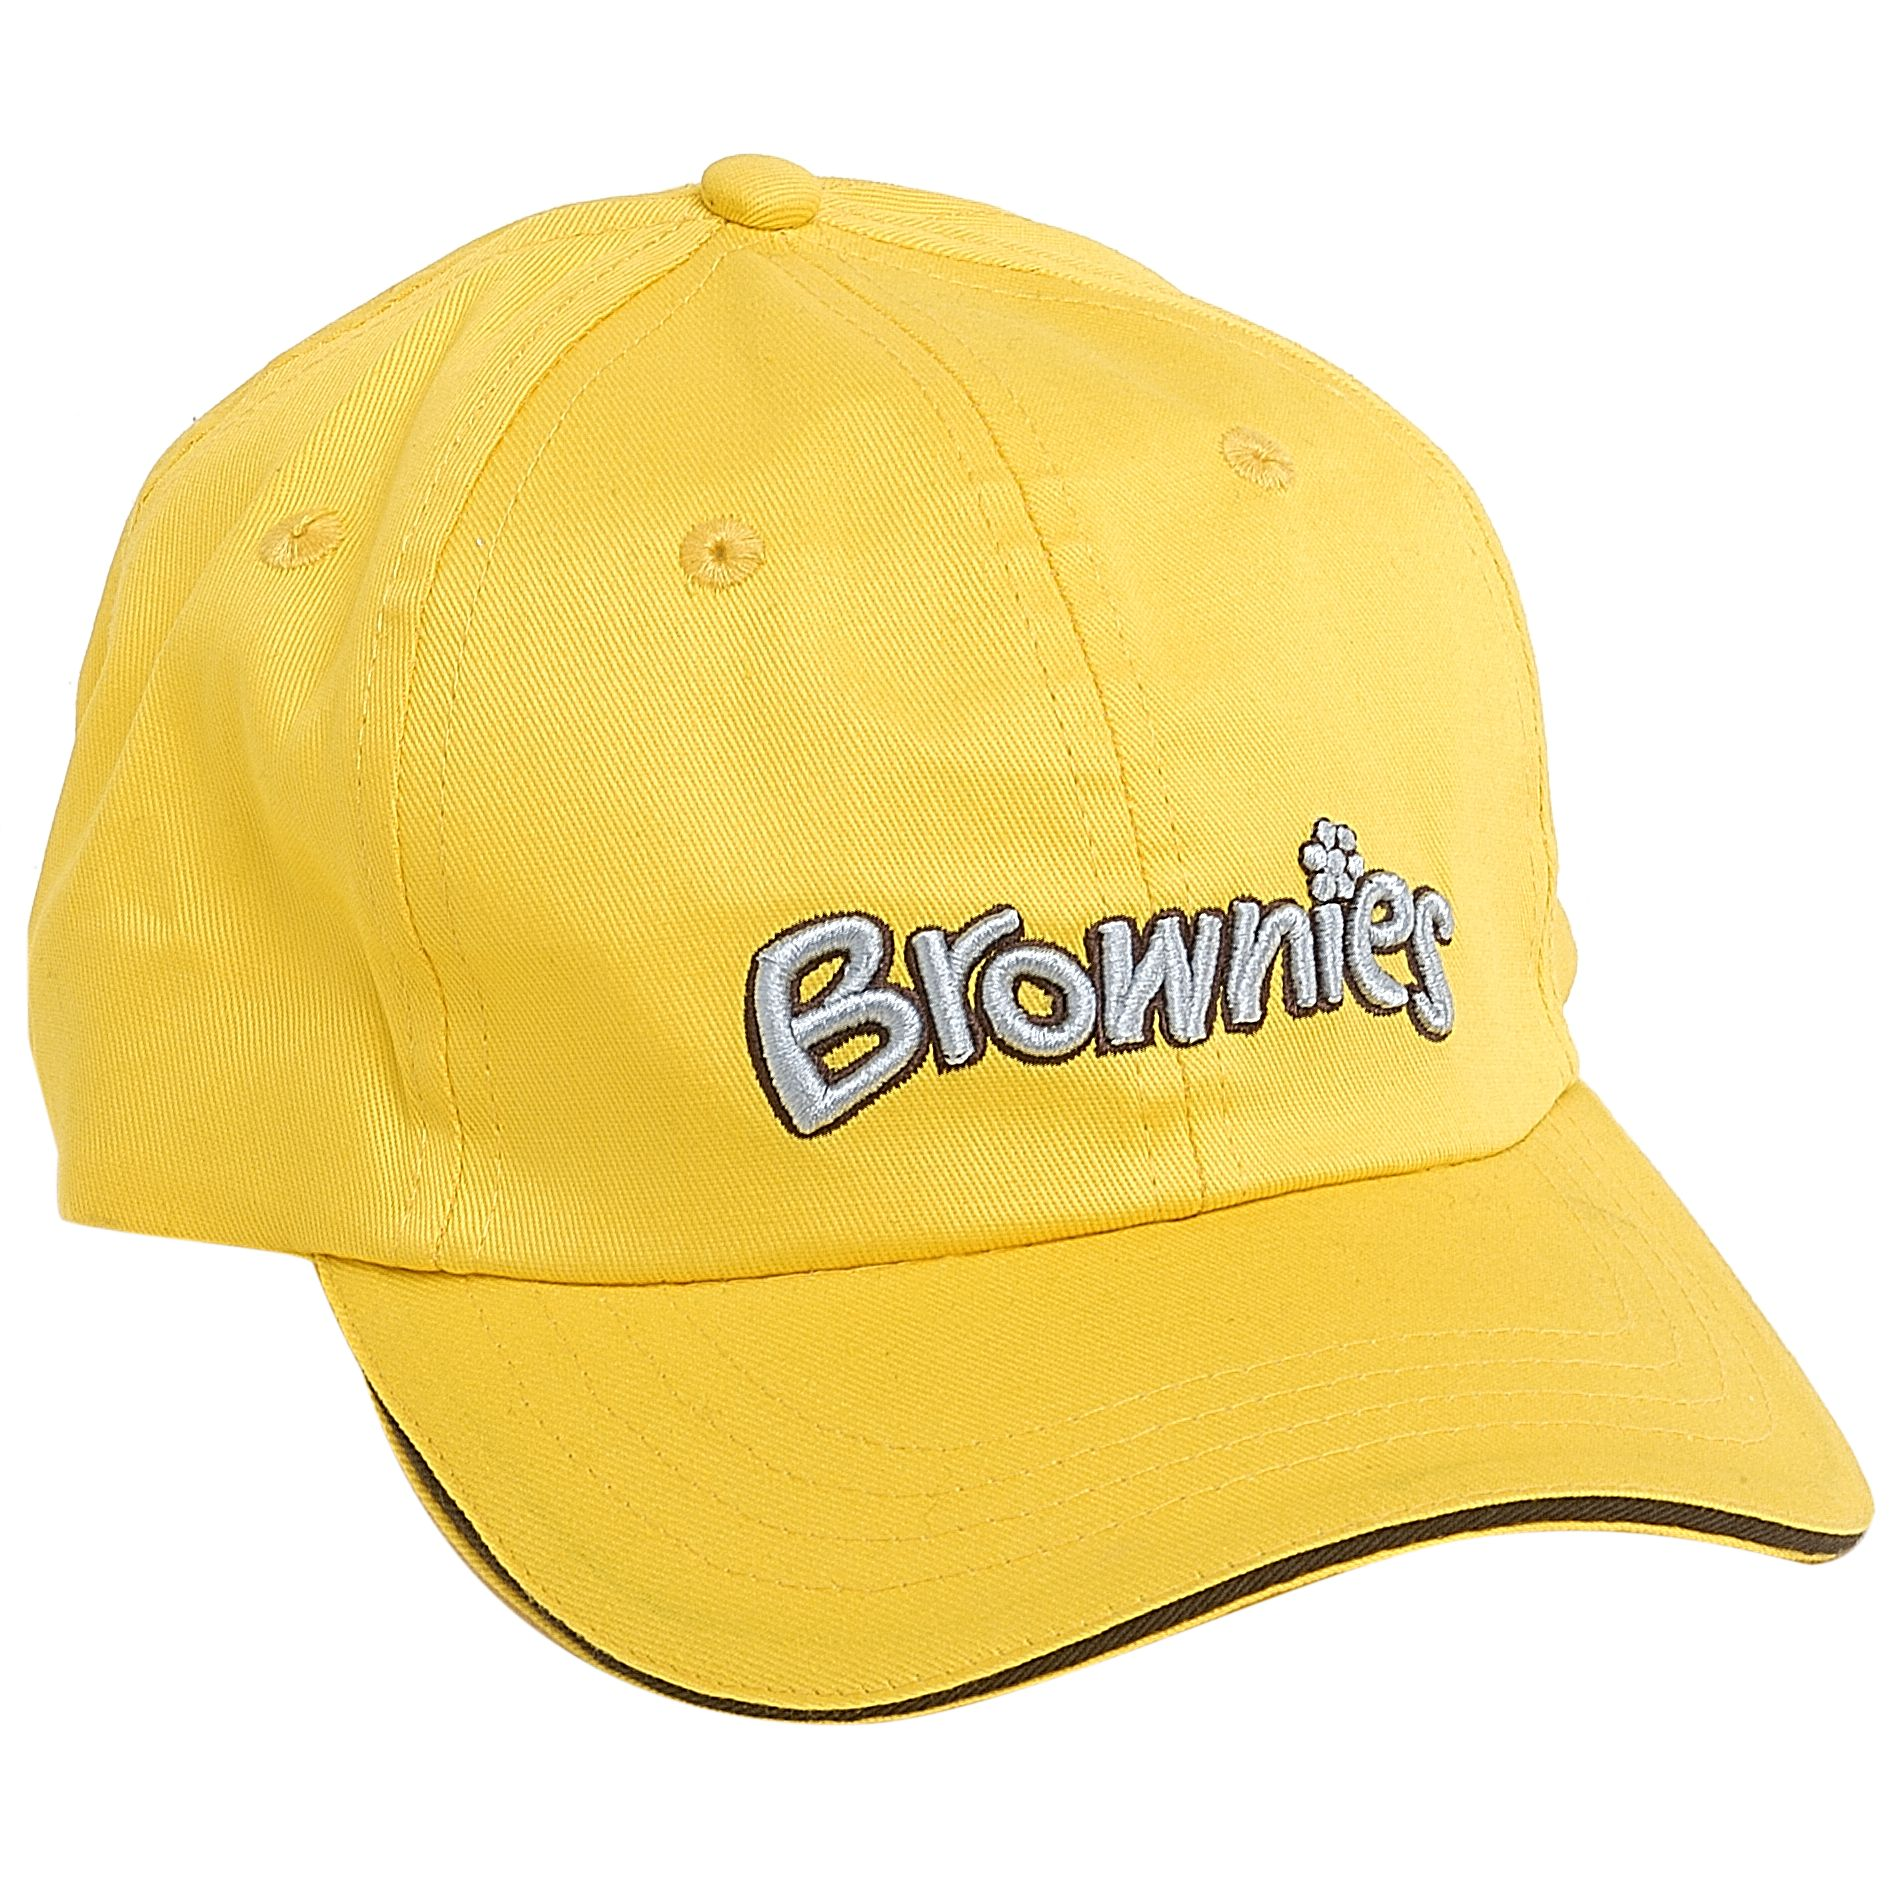 Brownies Brownies Uniform Cap, Yellow, One Size